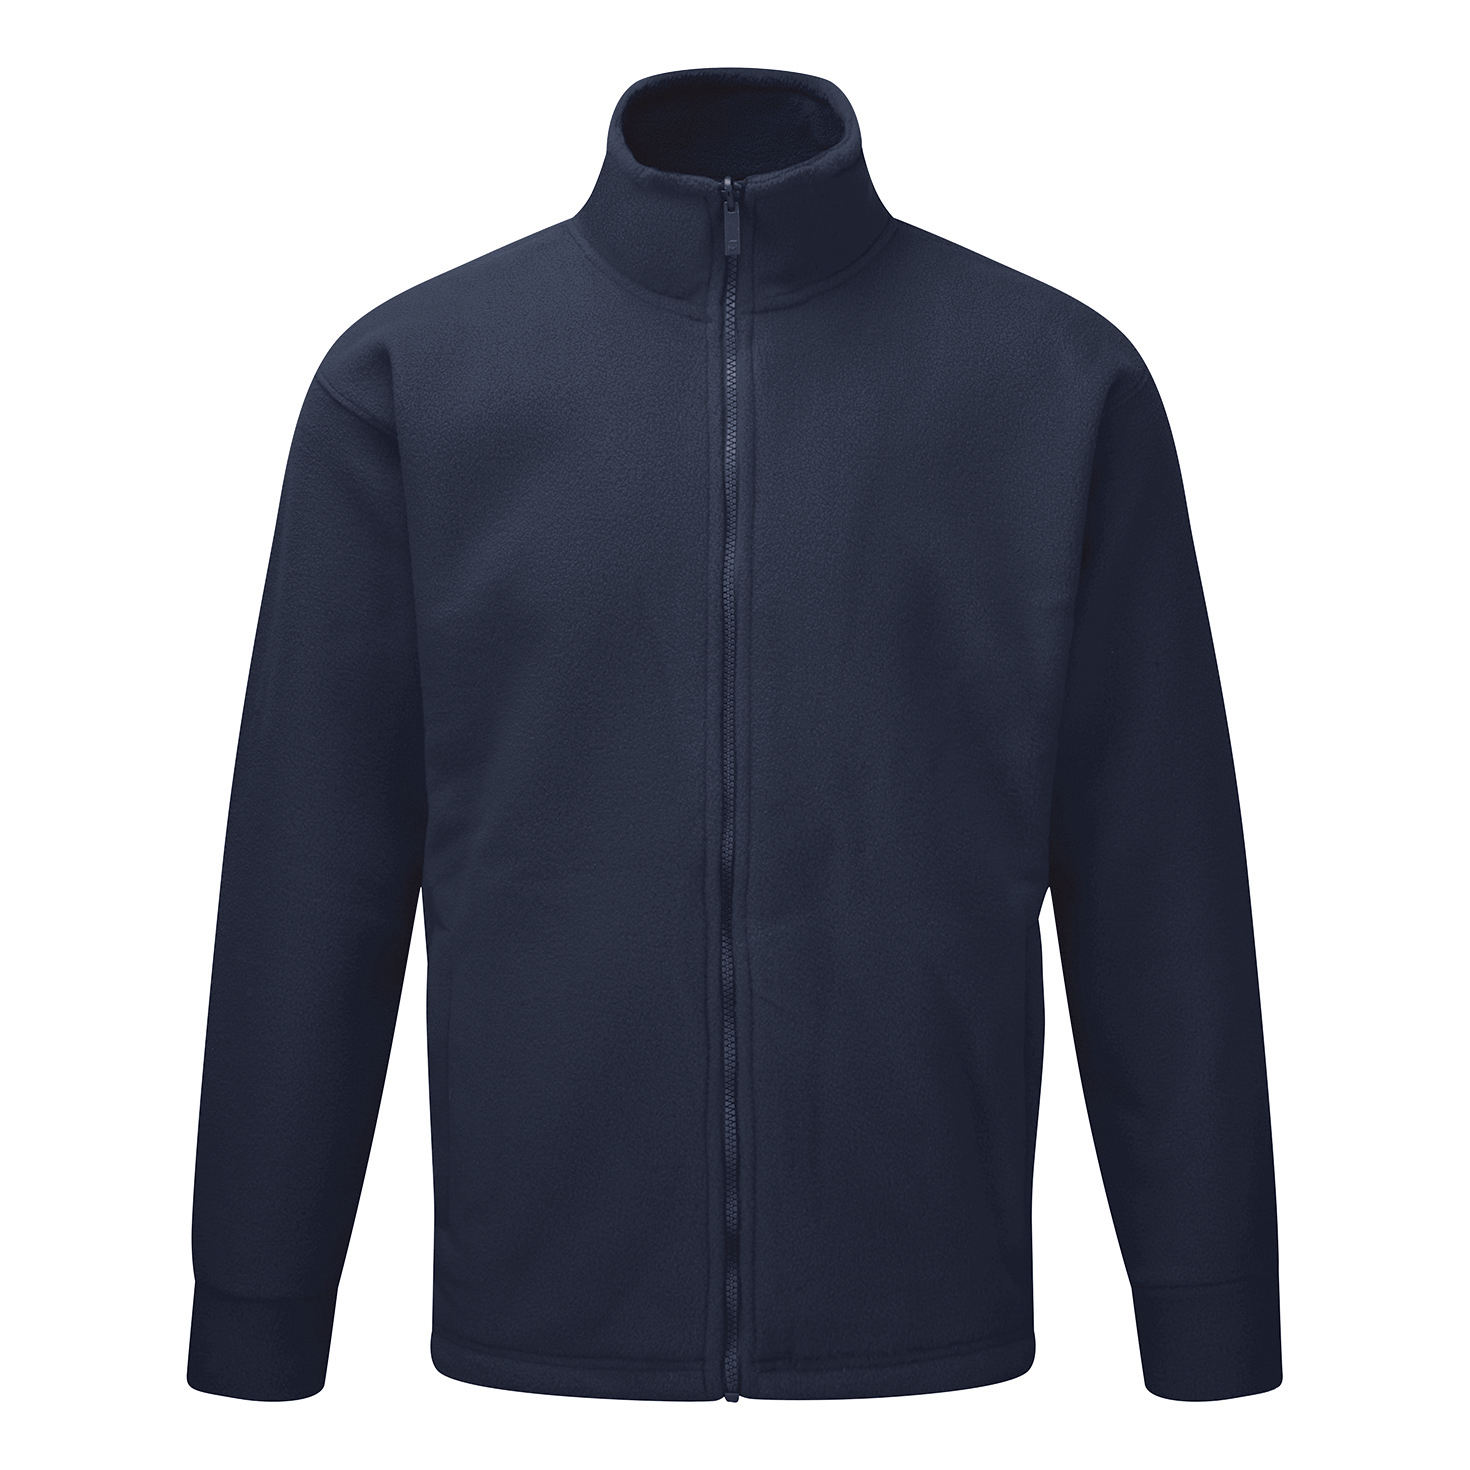 Fleeces Classic Fleece Jacket Elasticated Cuffs Full Zip Front XS Navy Ref FLJNXS *Approx 3 Day Leadtime*